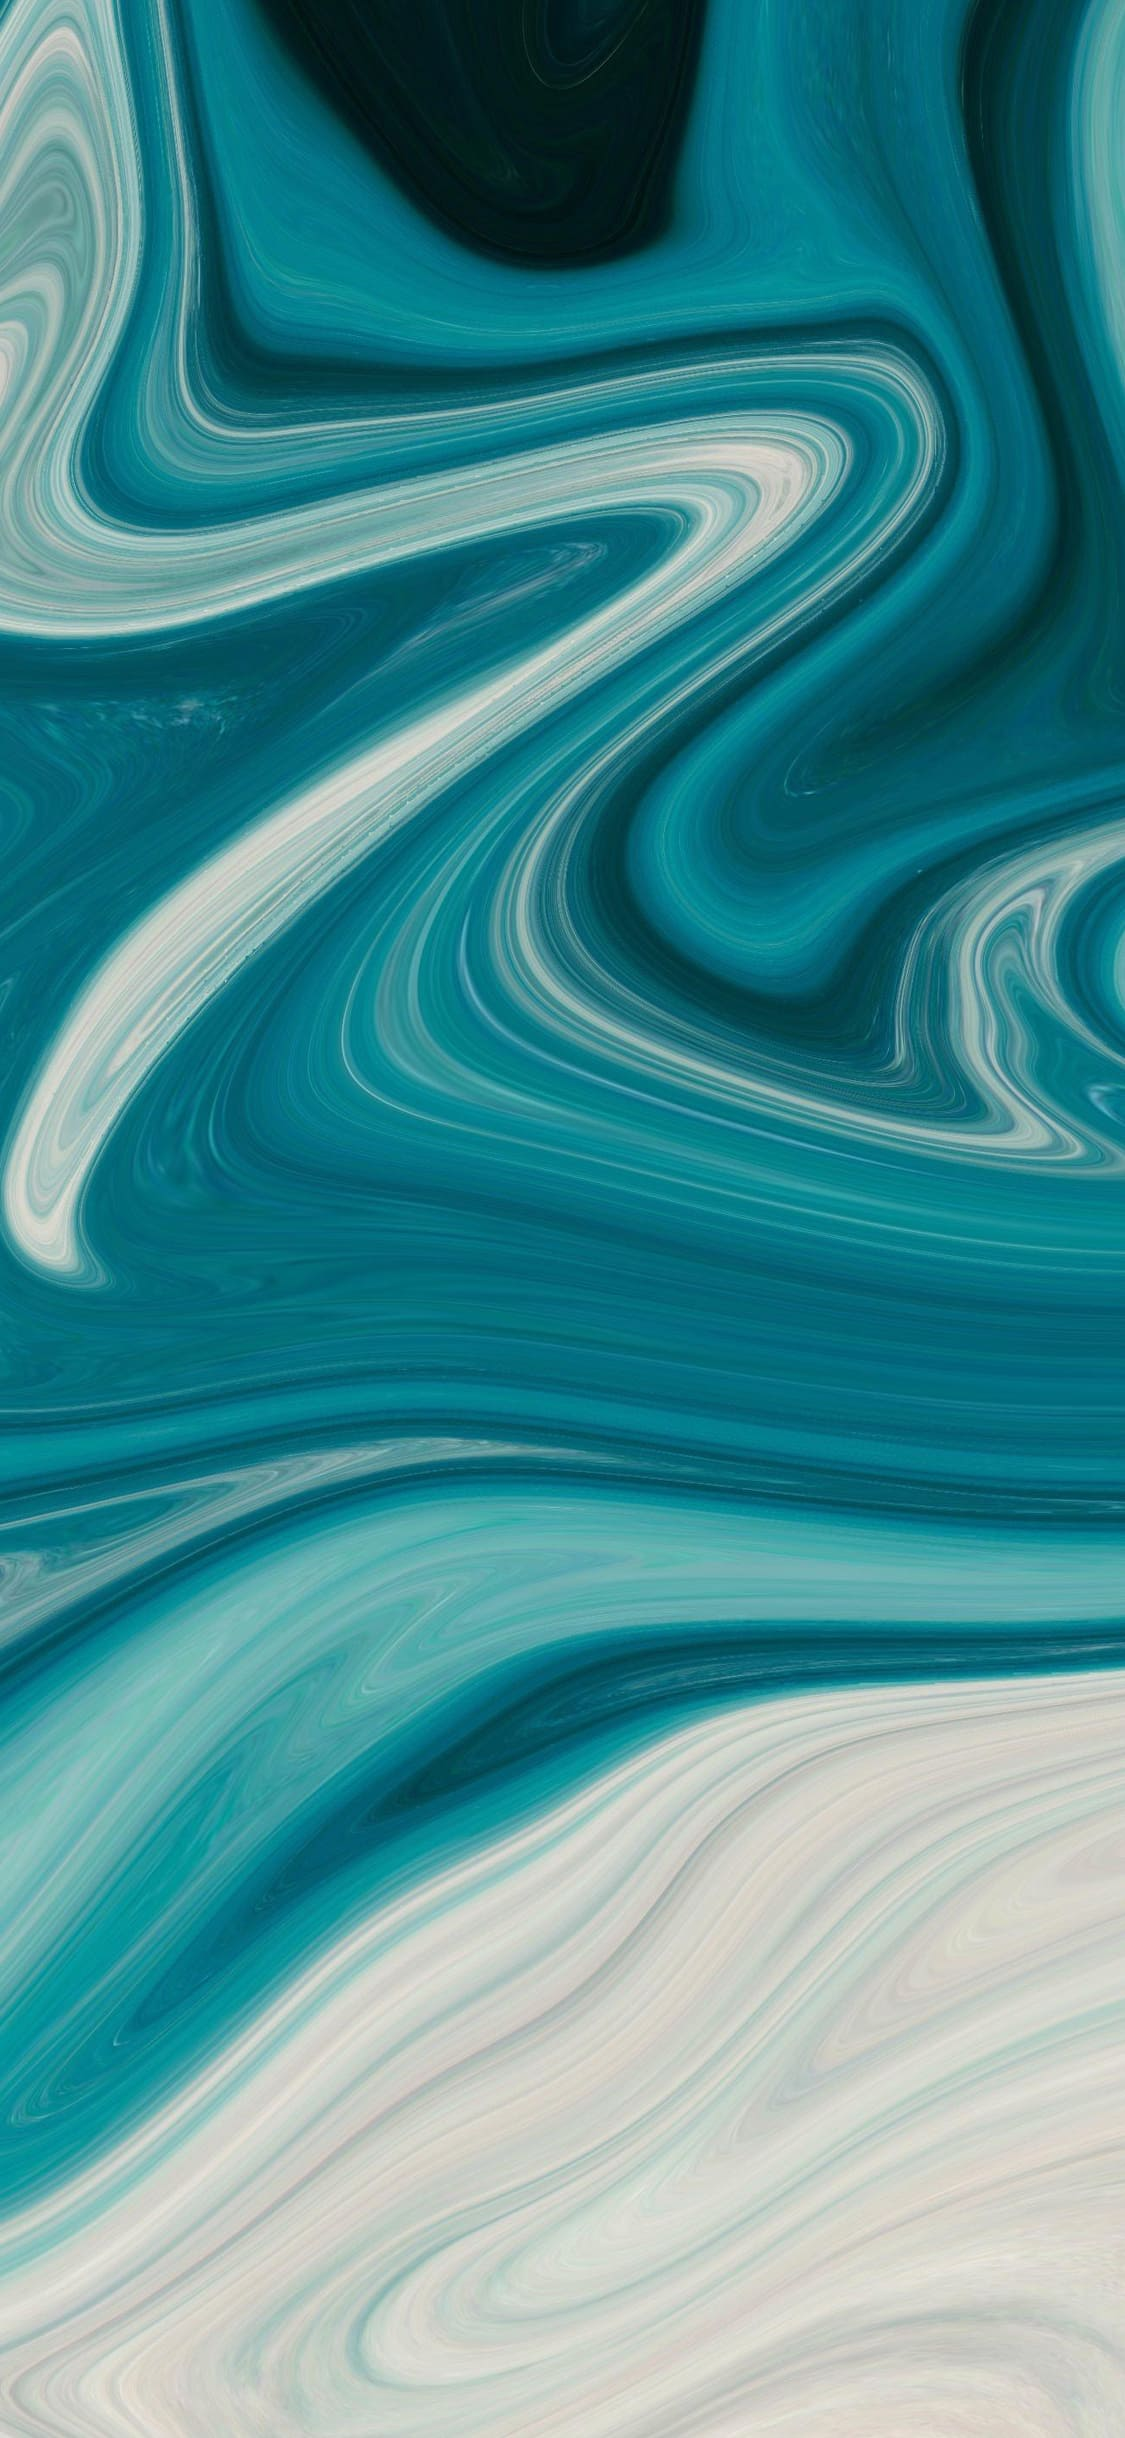 Download IOS 12 Wallpapers (8 Wallpapers)